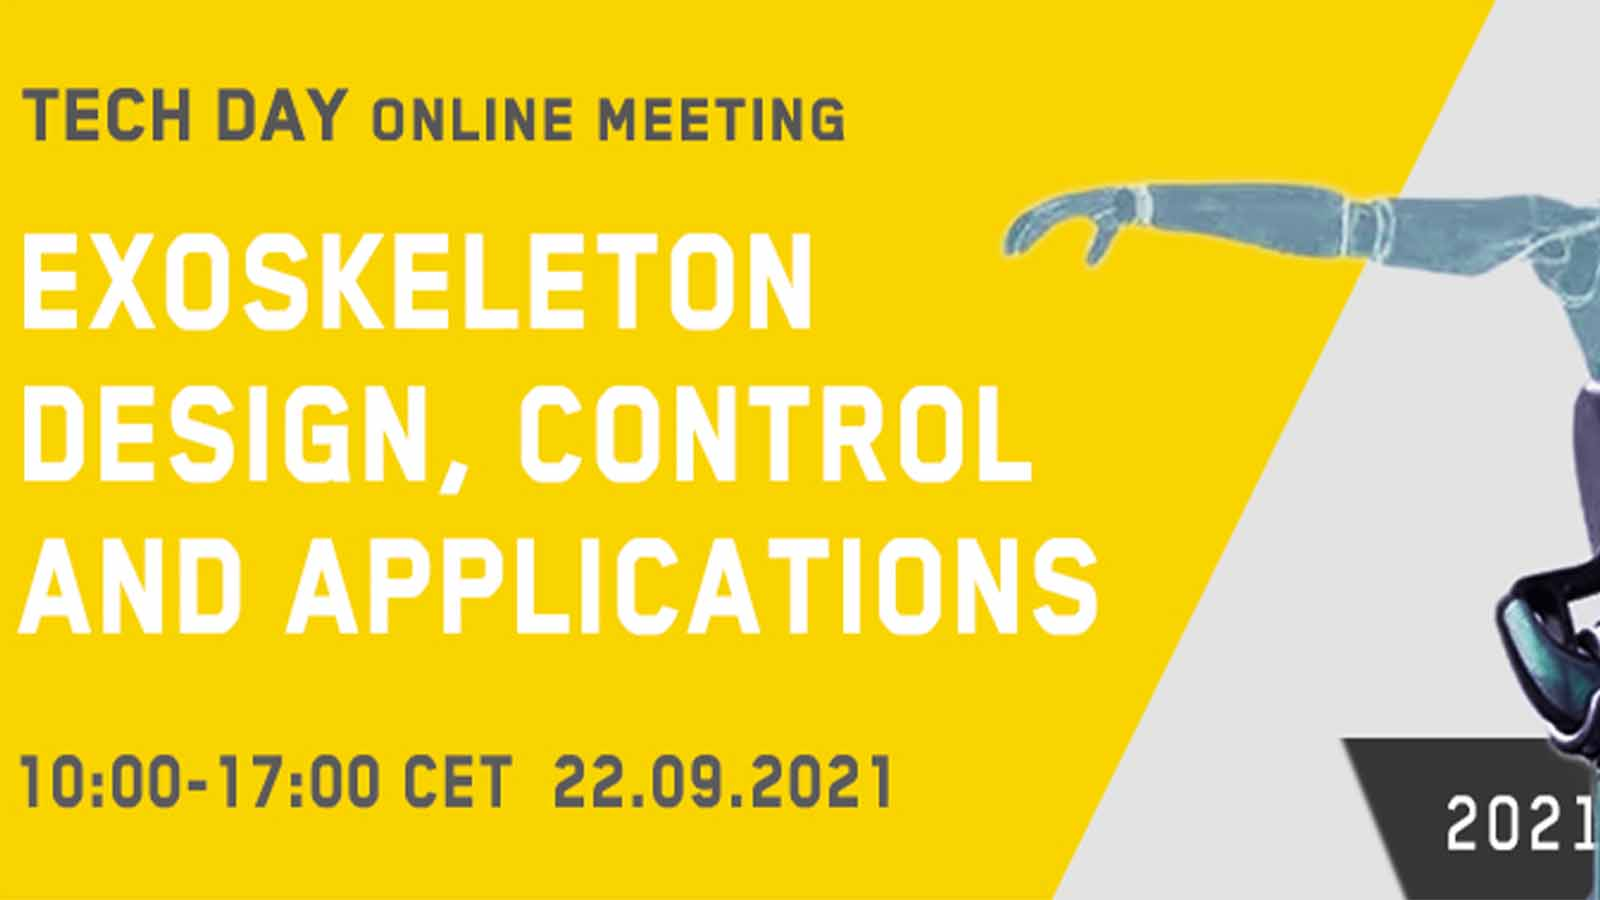 This TECH DAY online meeting will provide an up-to-date overview of latest trends and technology breakthroughs in wearable exoskeletons and ergonomics developed for industrial and medical applications. Exoskeleton manufacturers will demonstrate the features of their products and discuss the potential for improving safety, efficiency and productivity. Engineers and developers will discuss the major design challenges on developing lighter and smarter exoskeleton devices, and future research directions in structure design, processing speeds, sensors and materials. We invite you to join this online meeting to discover a mix of action-based technical sessions, product demos and customer stories.